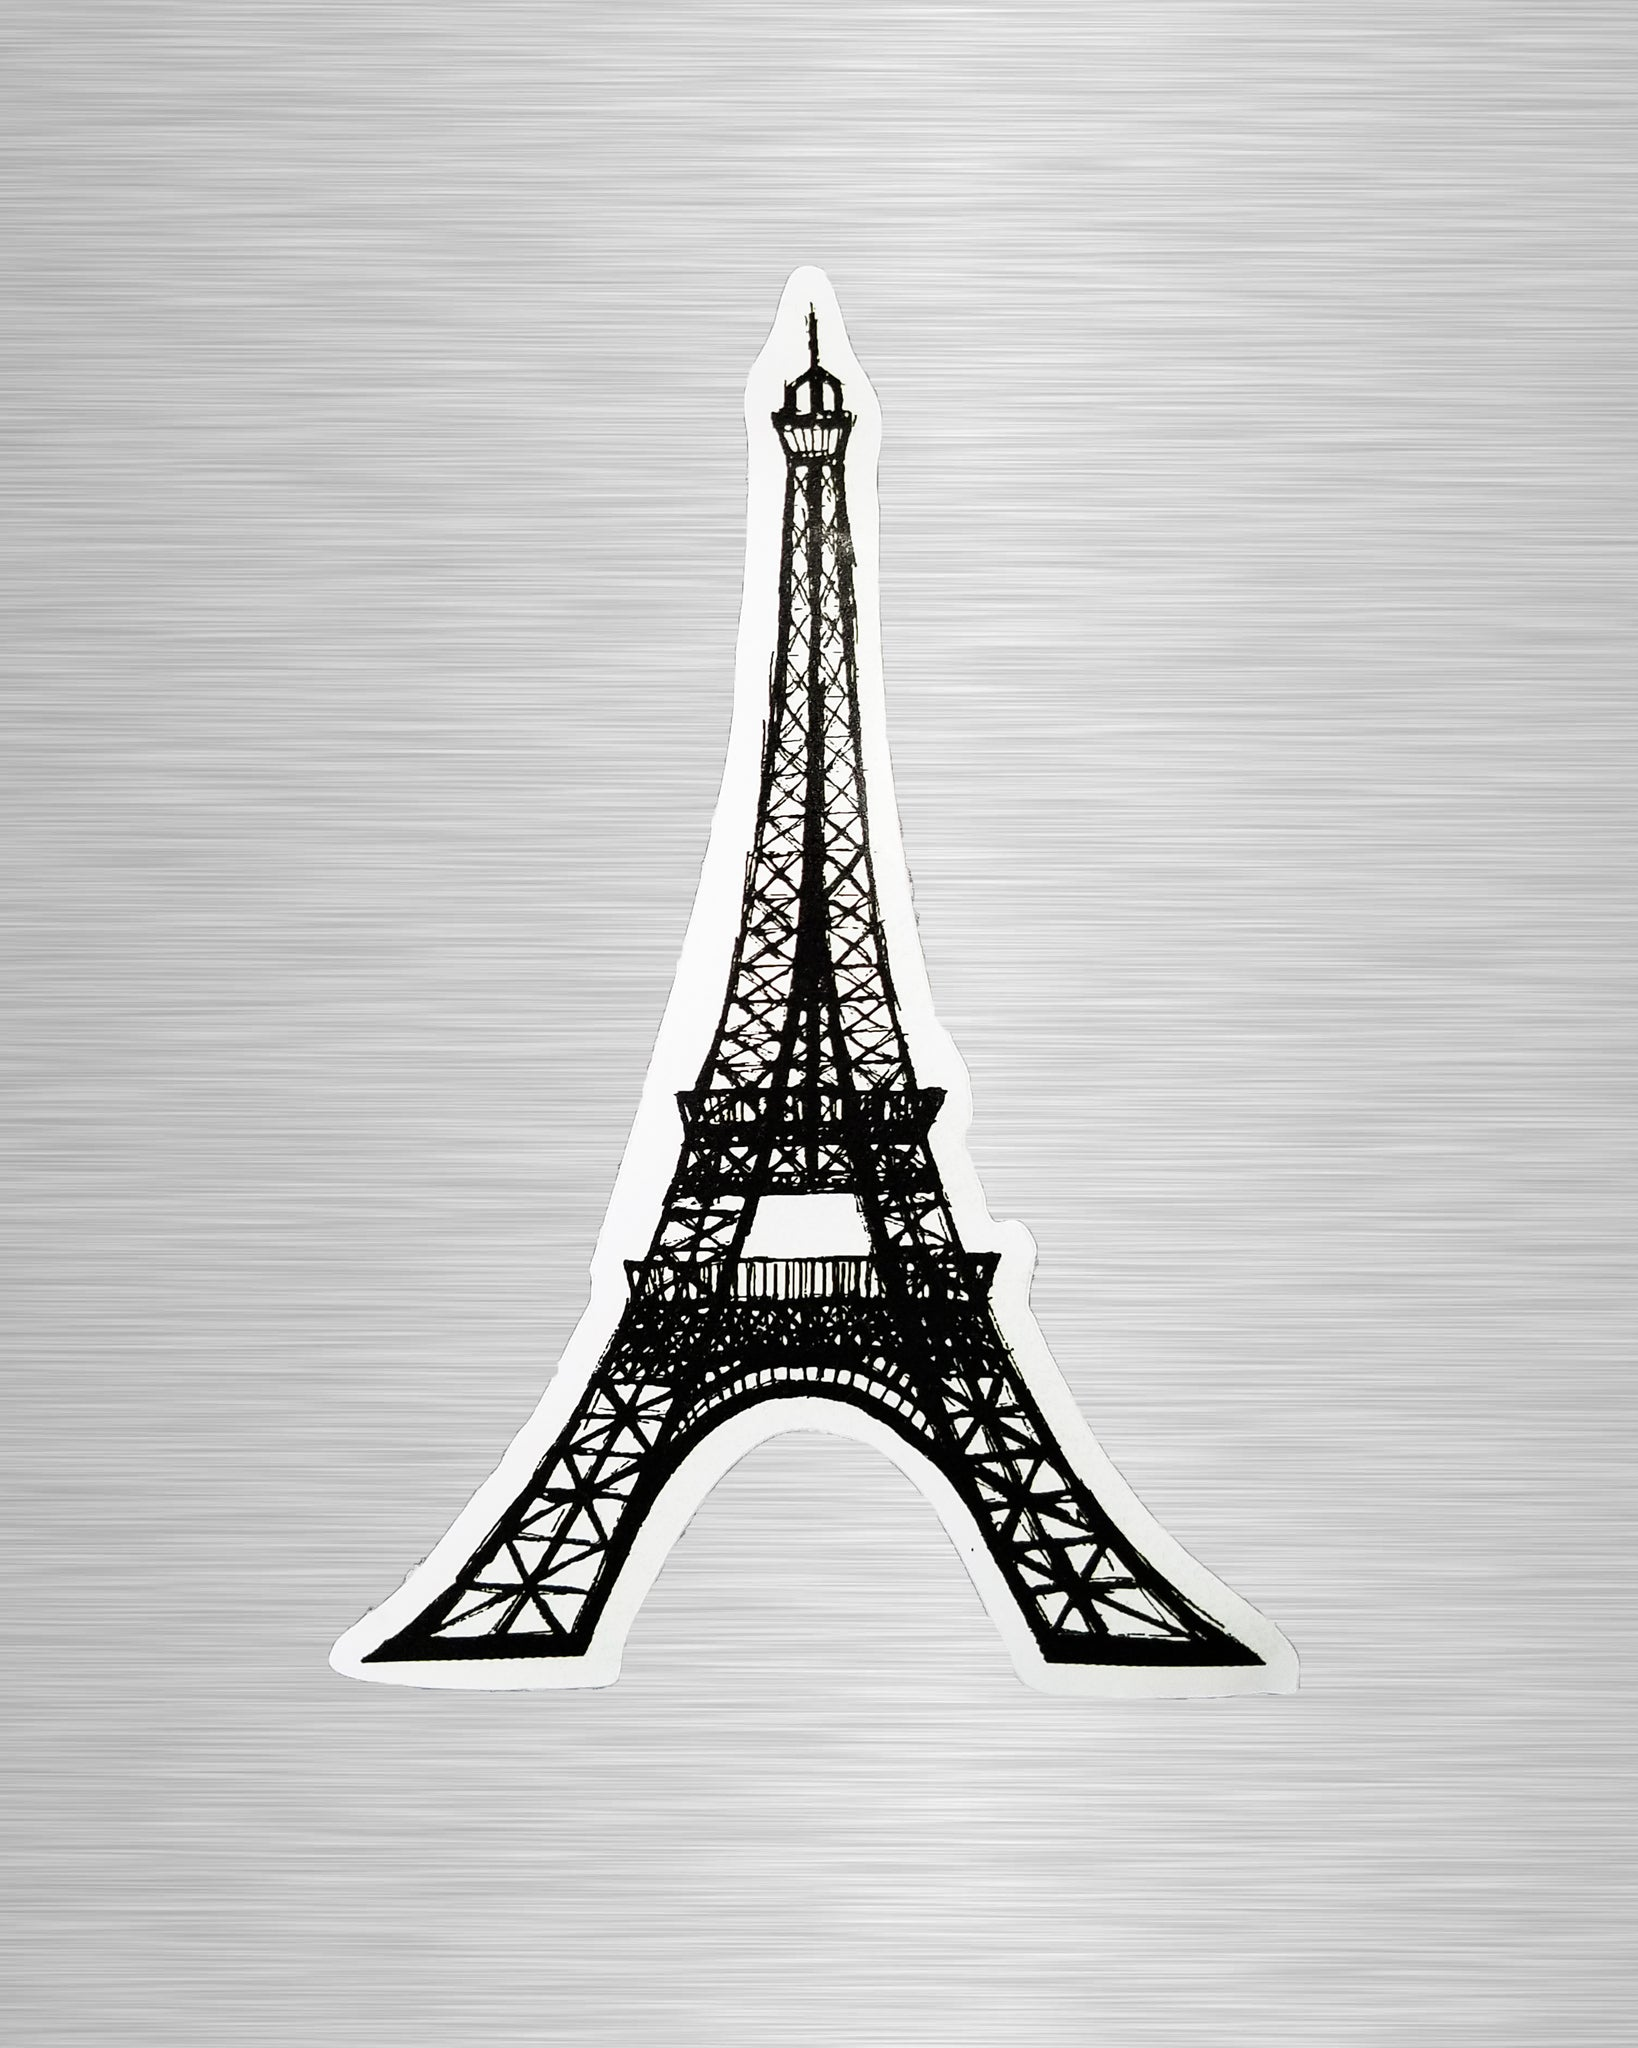 Eiffel Tower Sketch Sticker/Decal